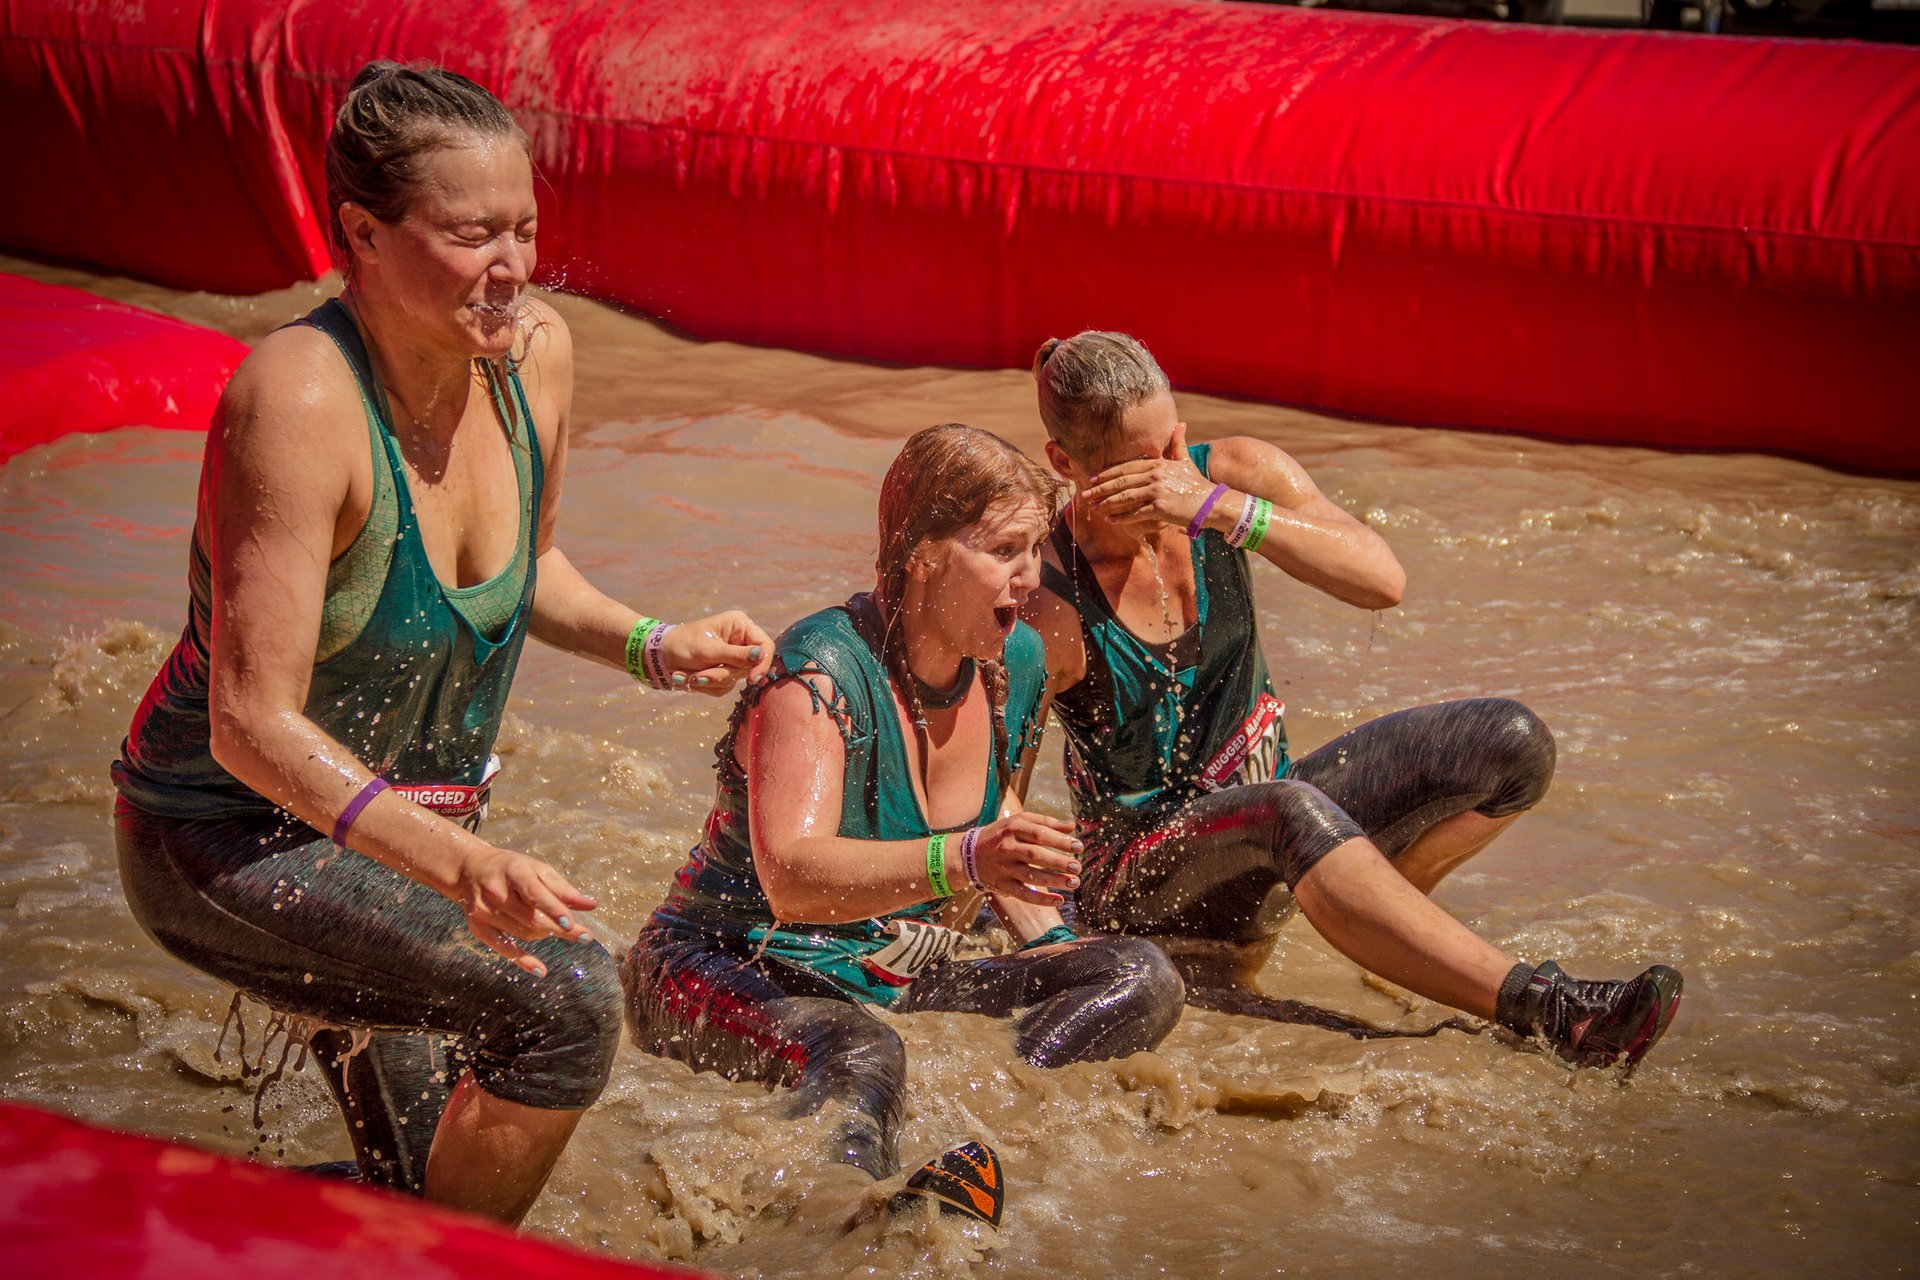 Best time for Rugged Maniac Kitchener in Ontario 2020